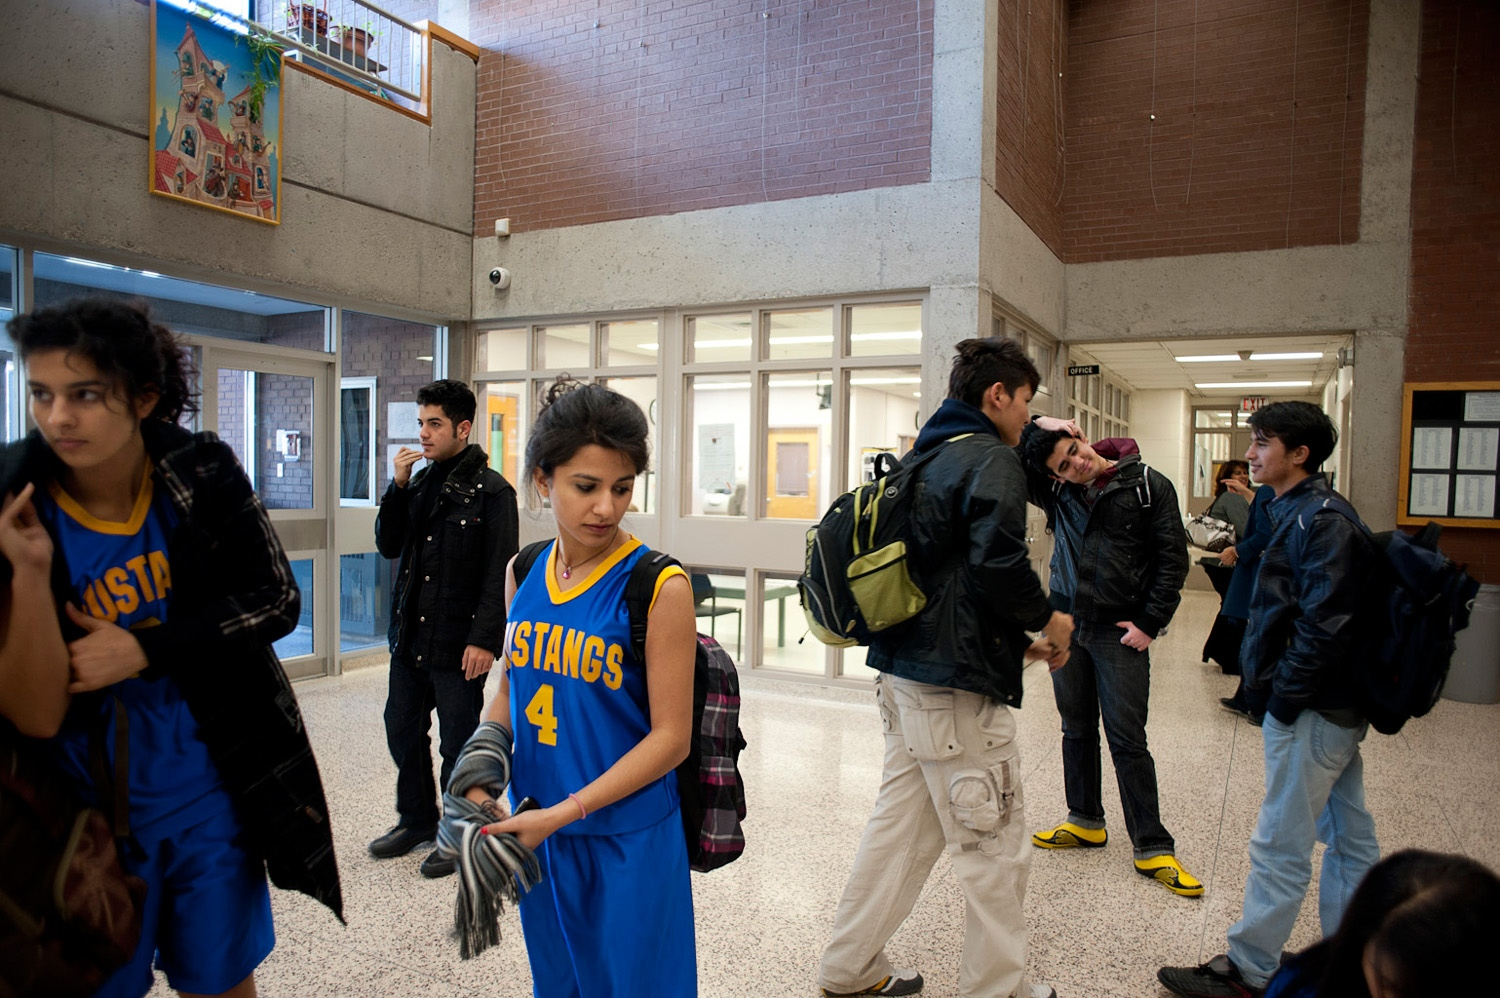 RICHMOND HILL, CANADA - 02/11/10 – Soheila plays in her school's basketball team. She and her teammates get together at the front entrance of their school to go to an afterschool game a neighboring school.